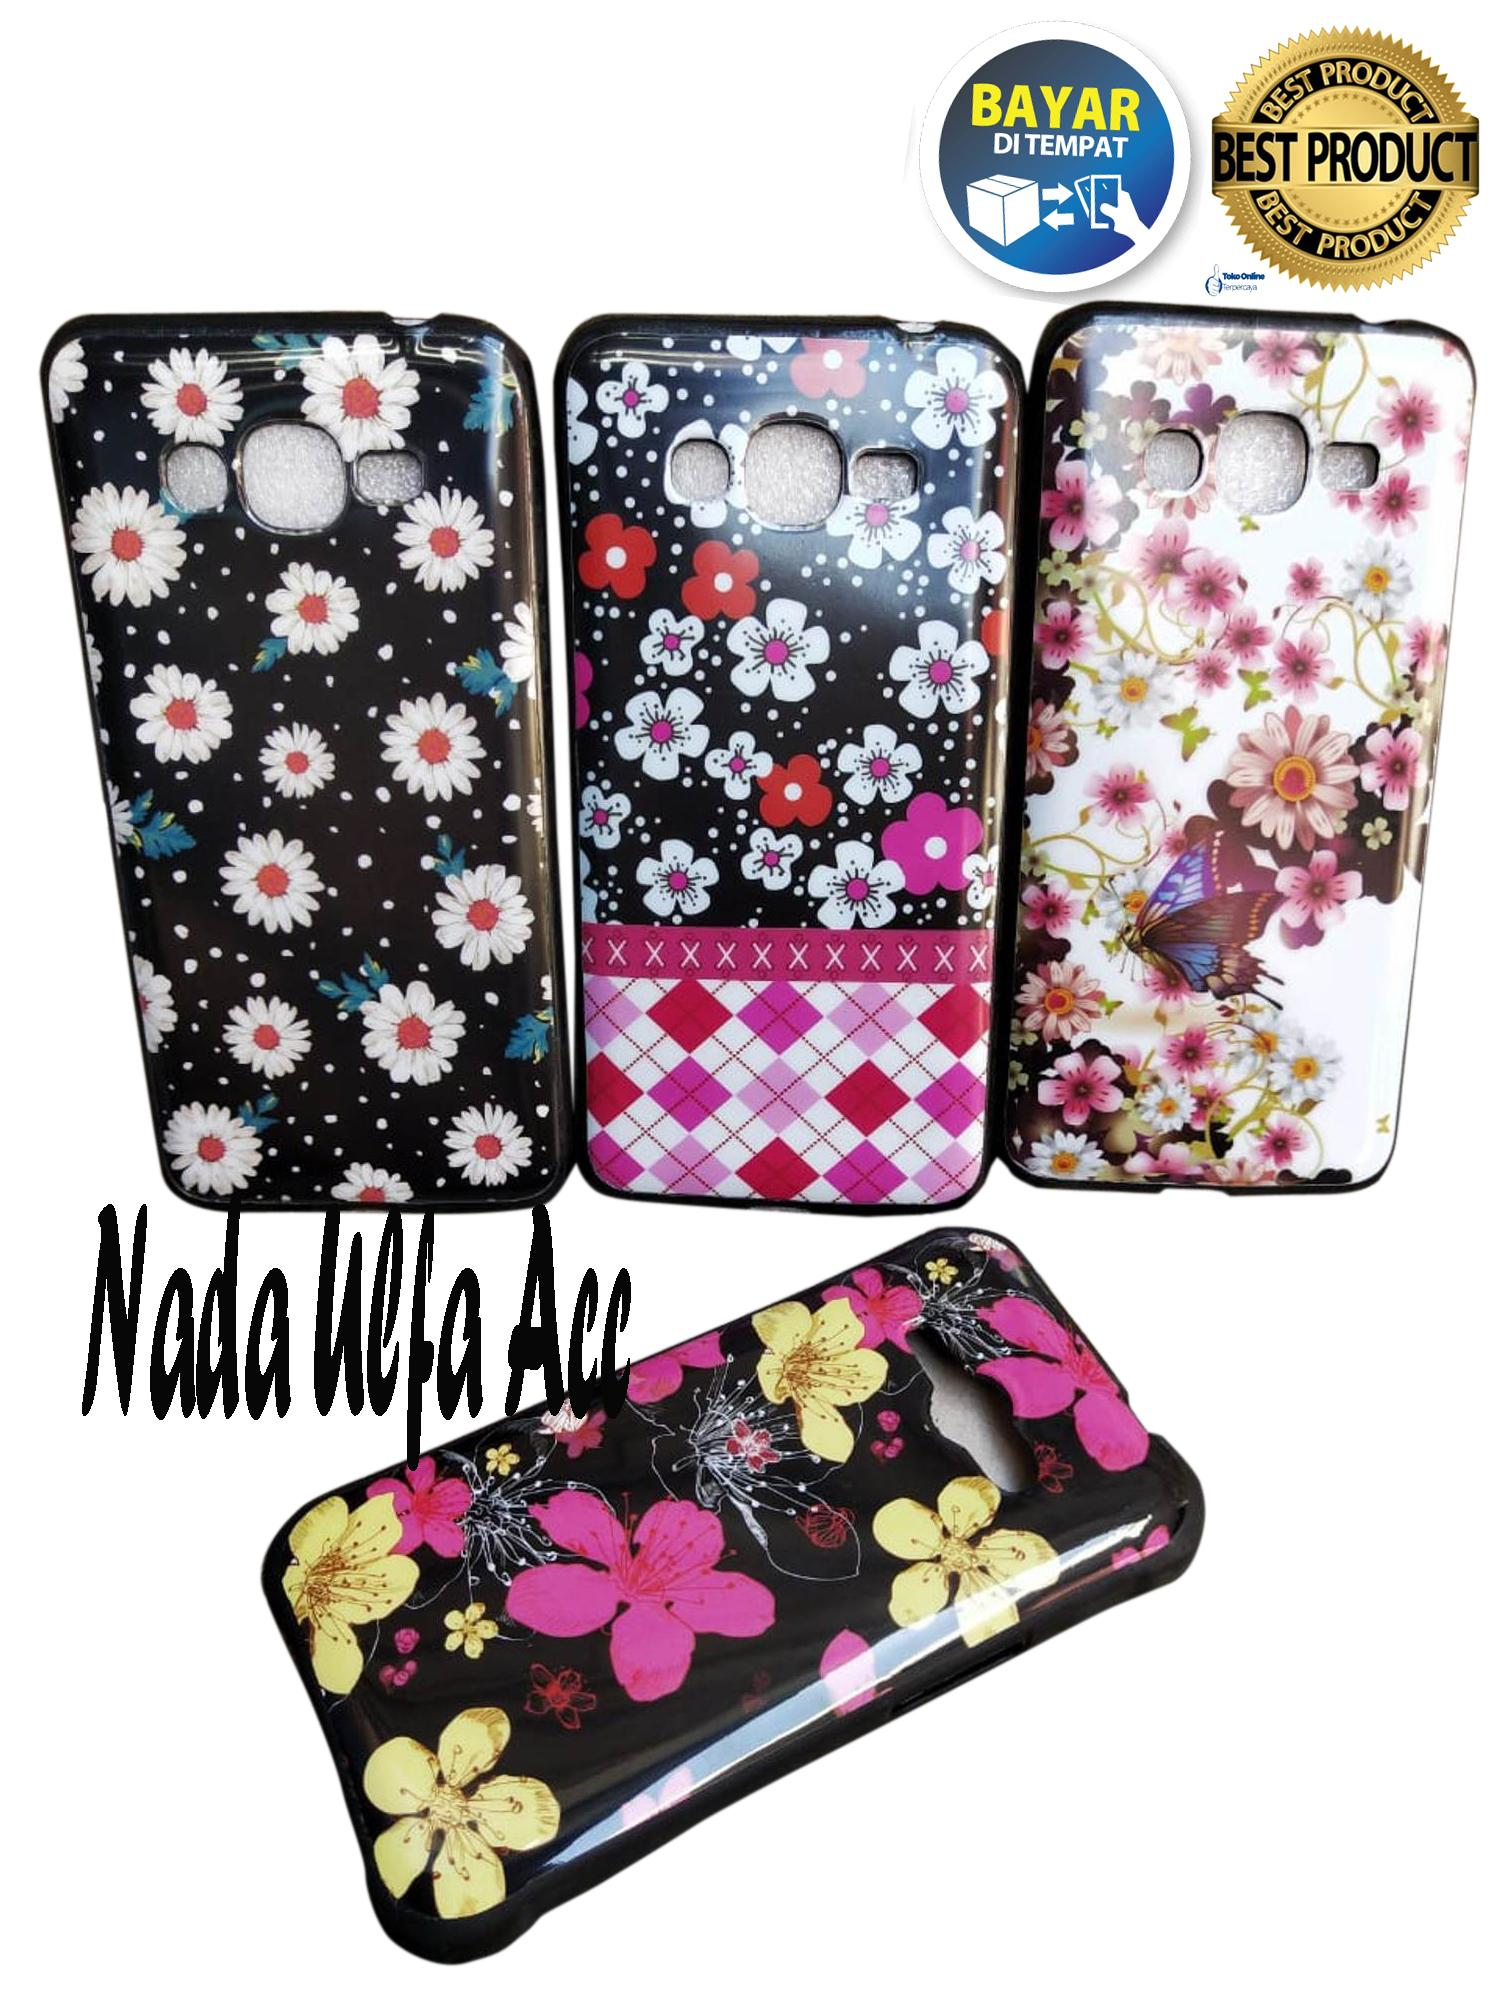 Case Softcase Karakter / Motif BUNGA CANTIK For Samsung Galaxy J2 Prime/Grand Prime G530